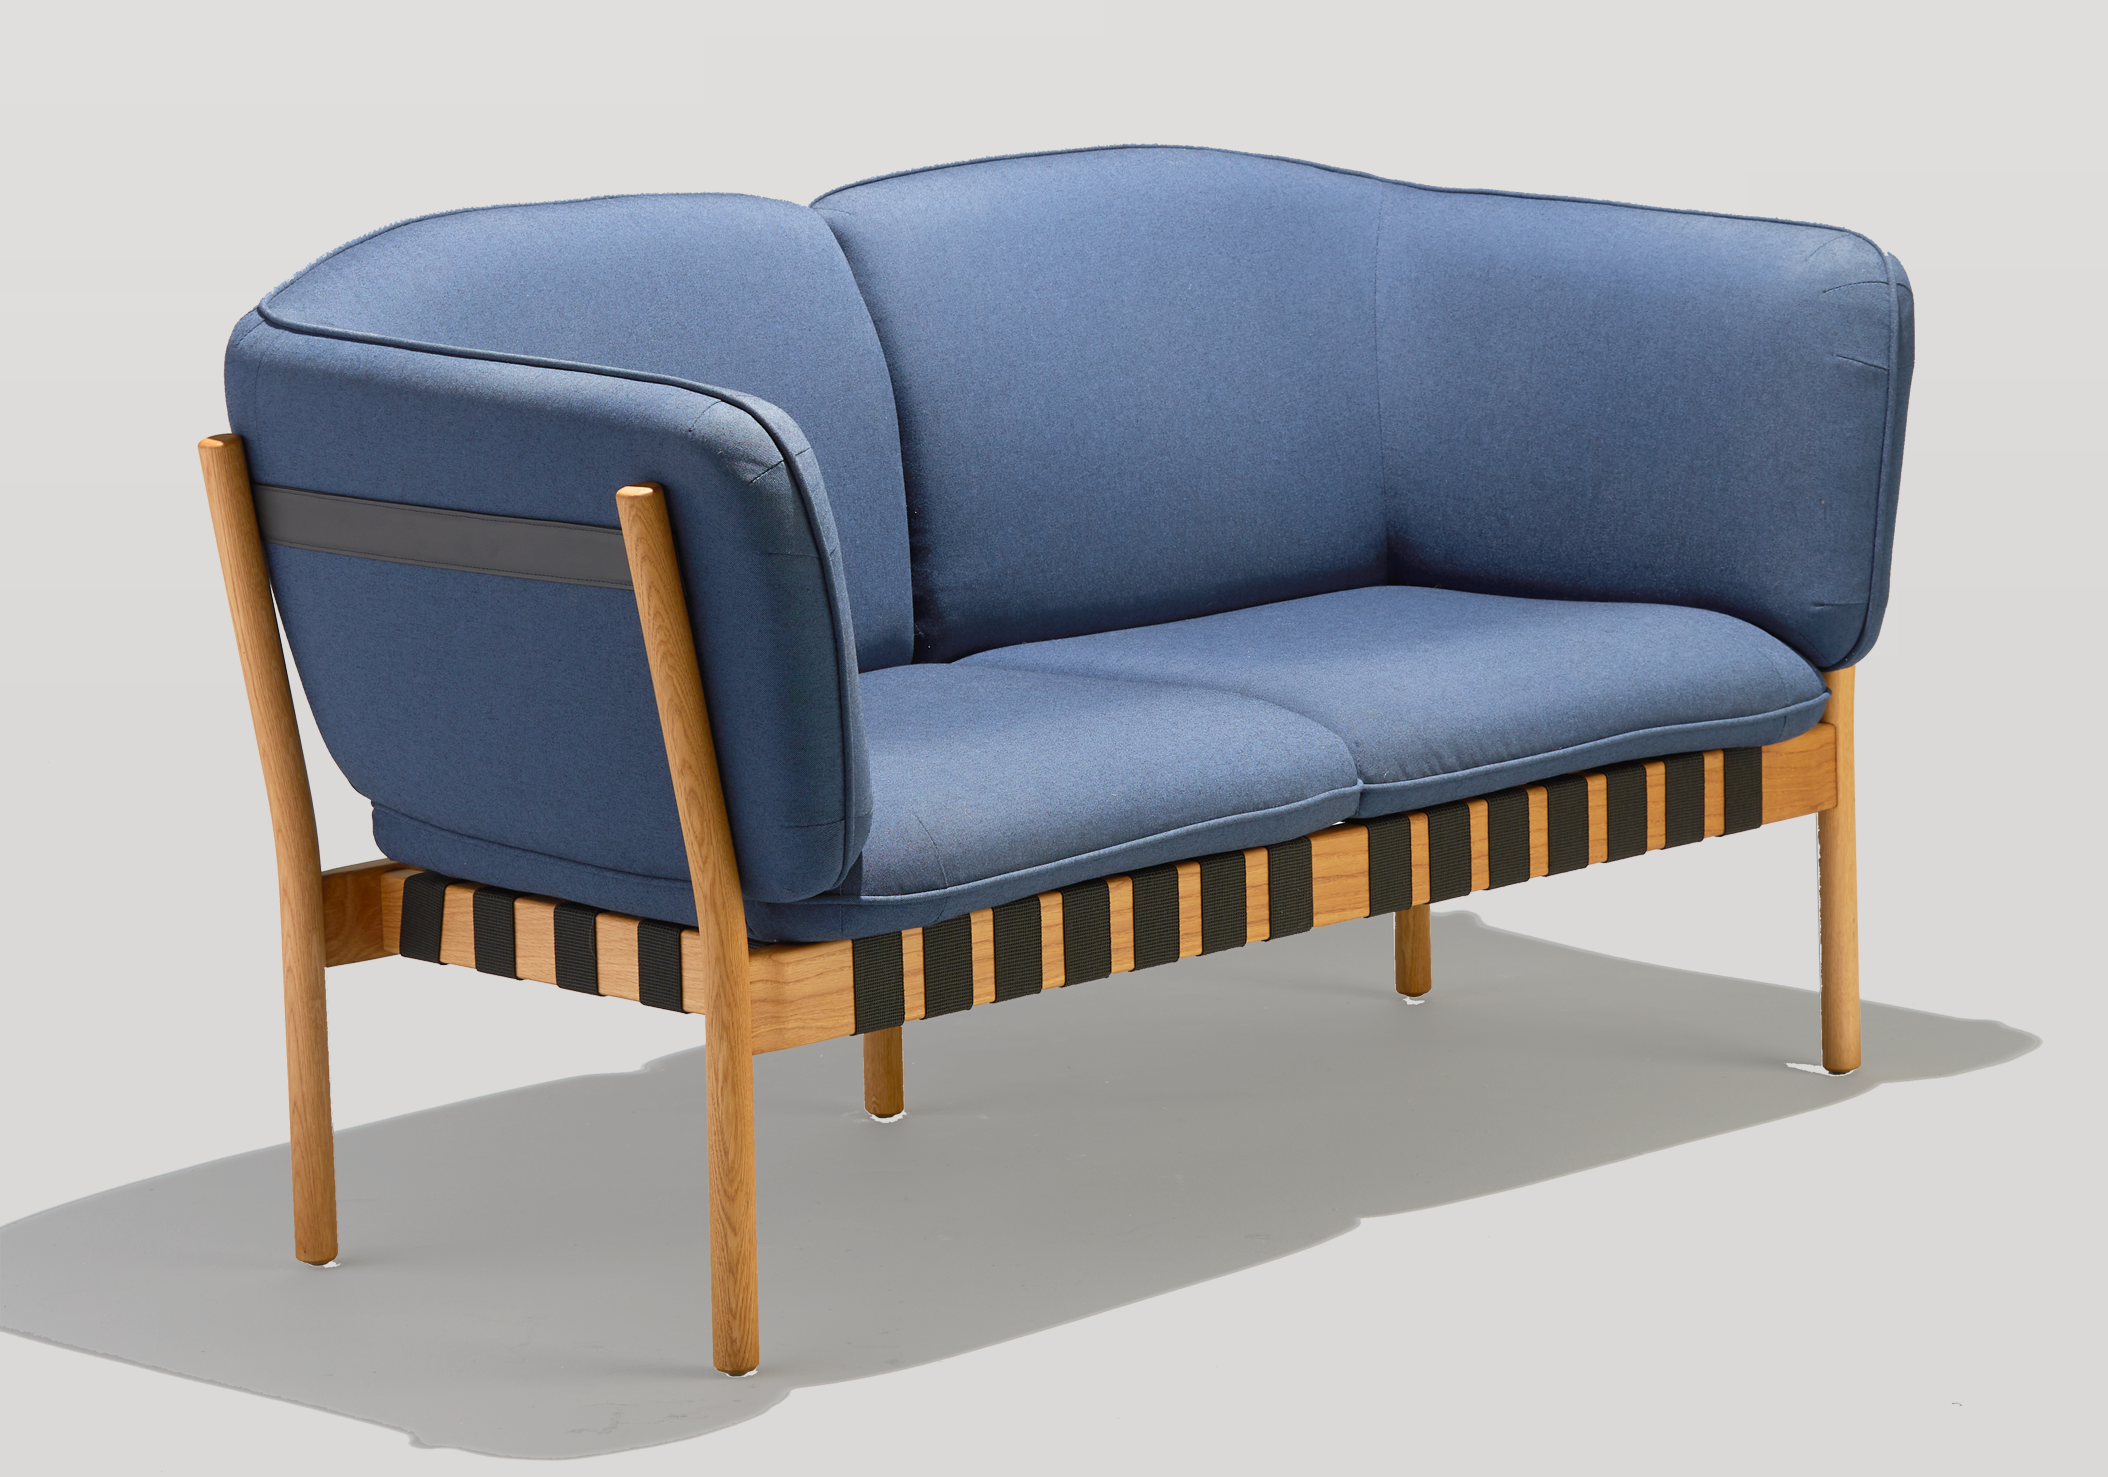 Dowel Love Seat with blue upholstery, white oak legs, and black top strap